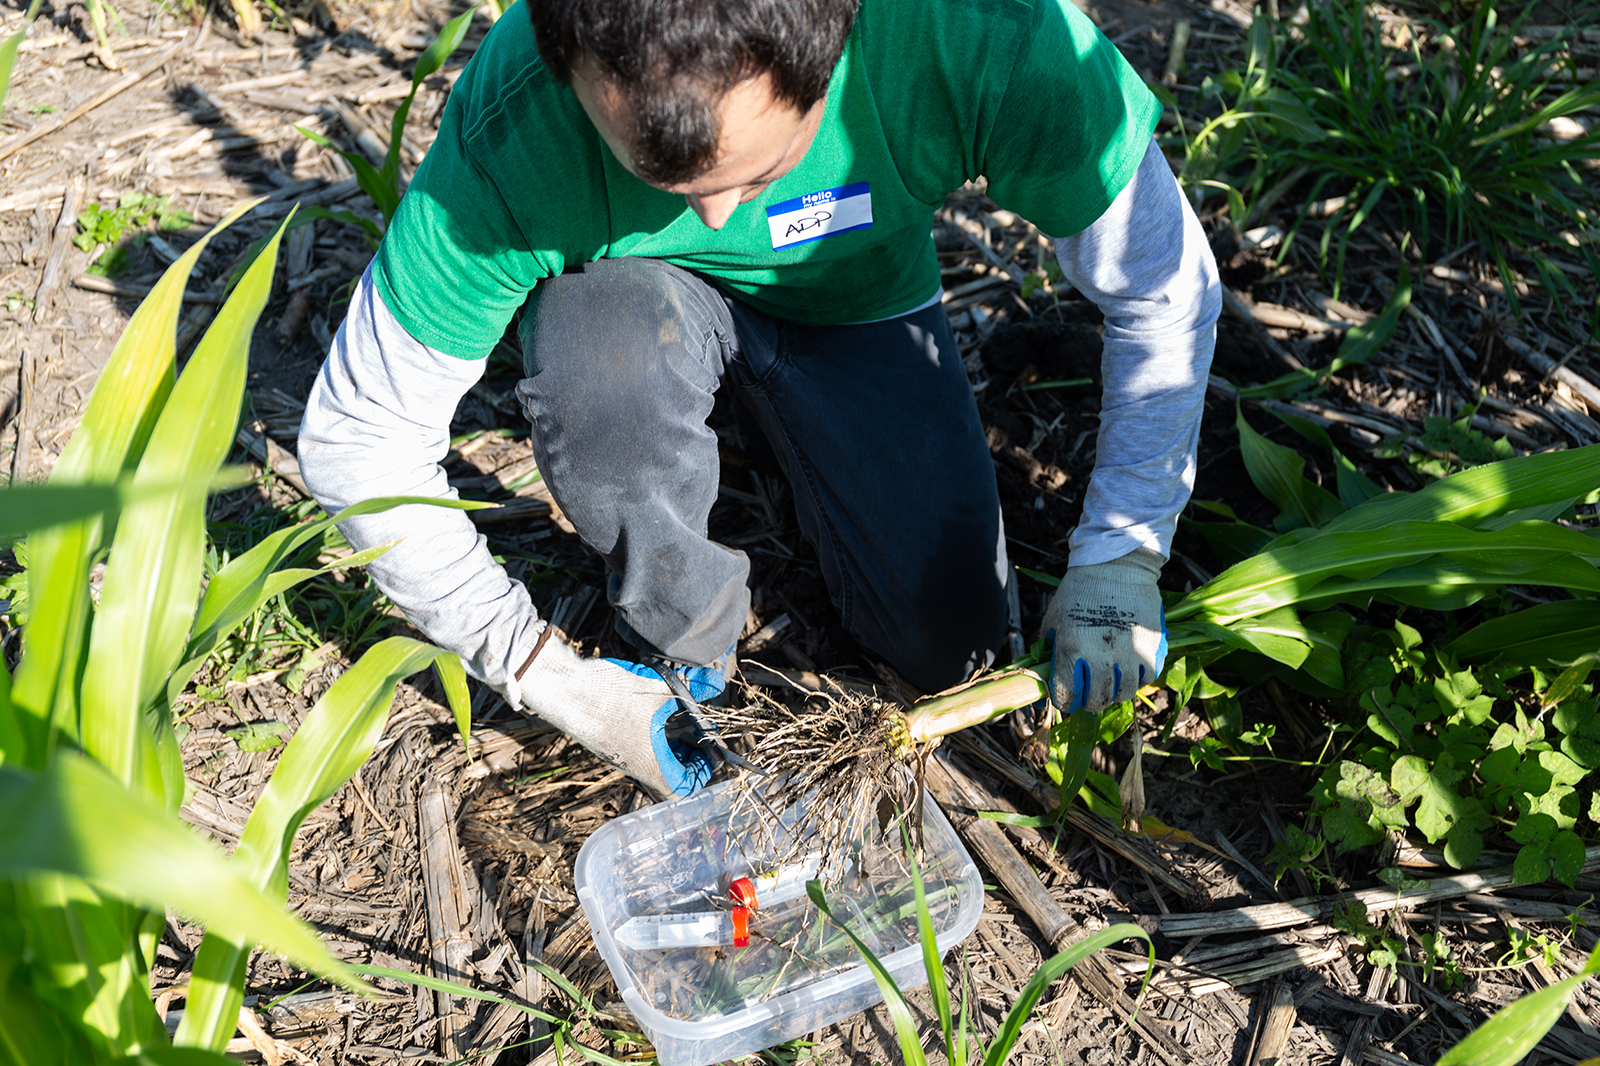 Alejandro Pages takes root samples from a research field as part of his Summer 2018 UCARE project with Dr. James Schnable.